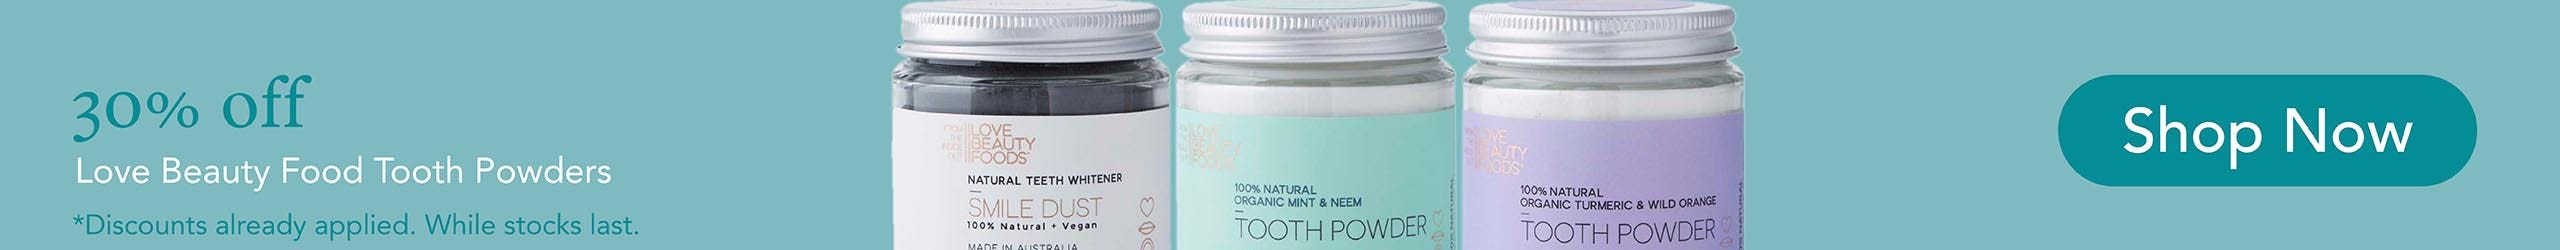 30% Off Love Beauty Foods Tooth Powders